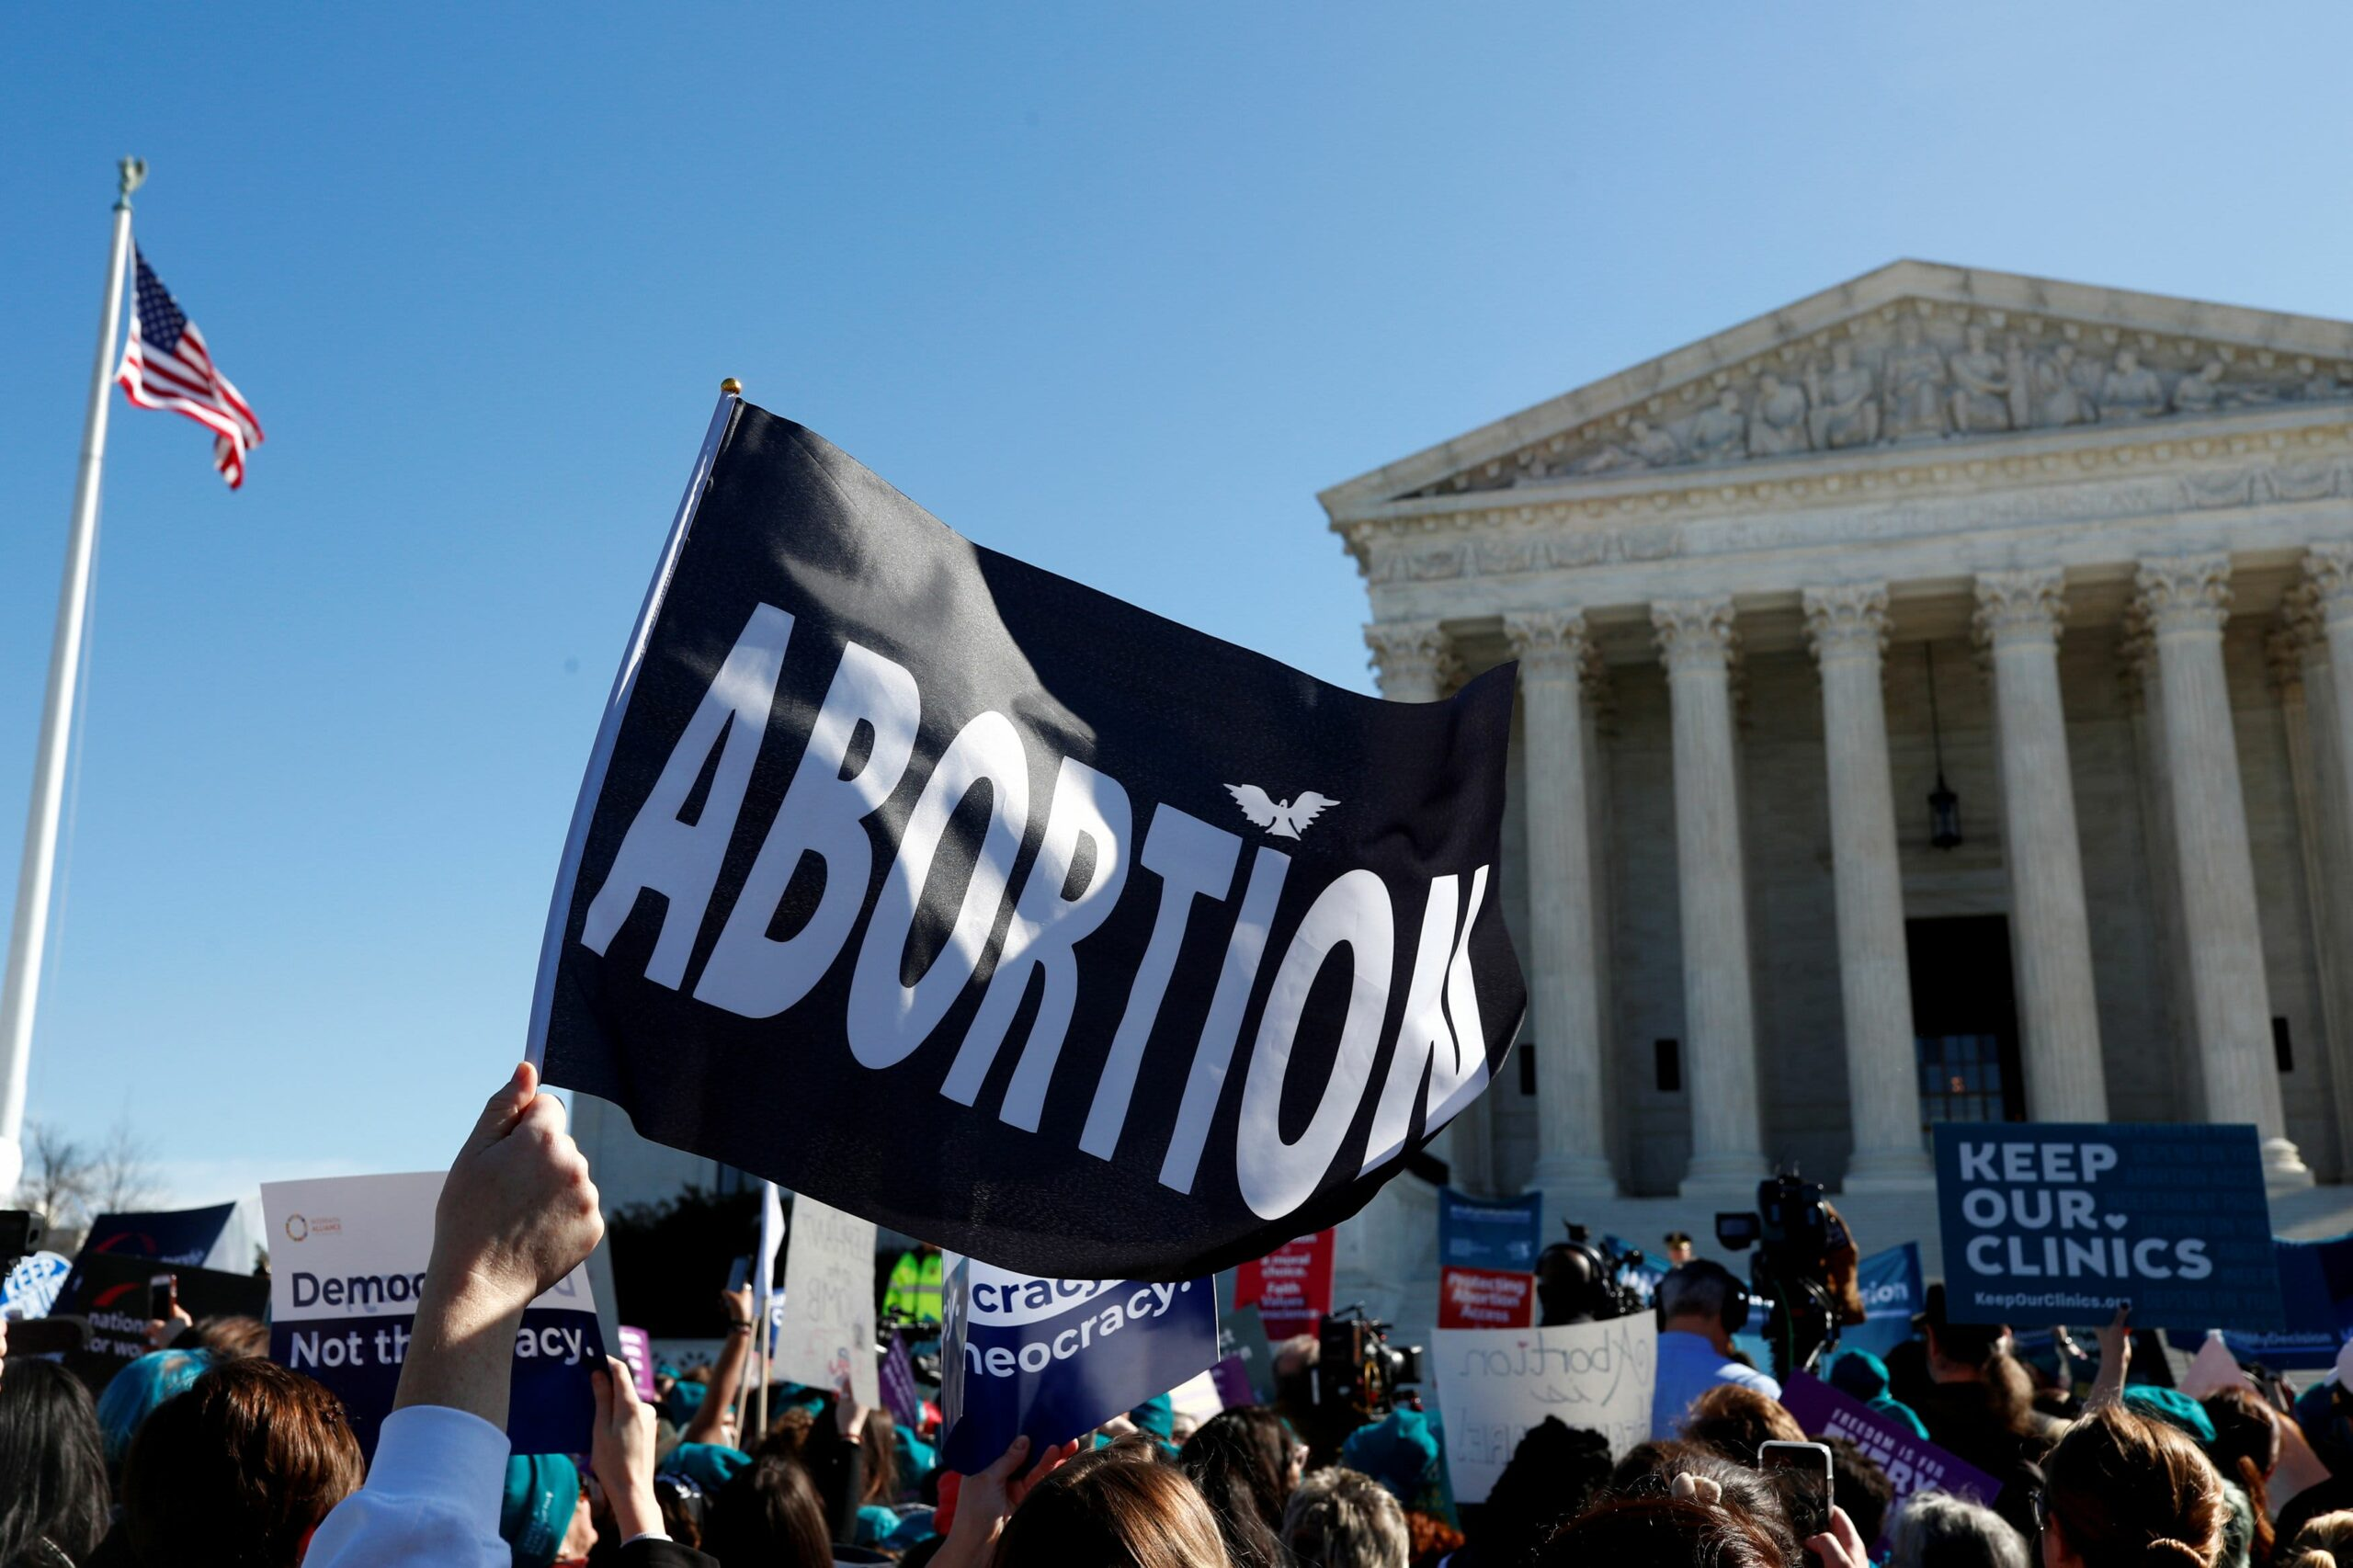 Abortion providers ask Supreme Court to take up challenge of restrictive Texas law